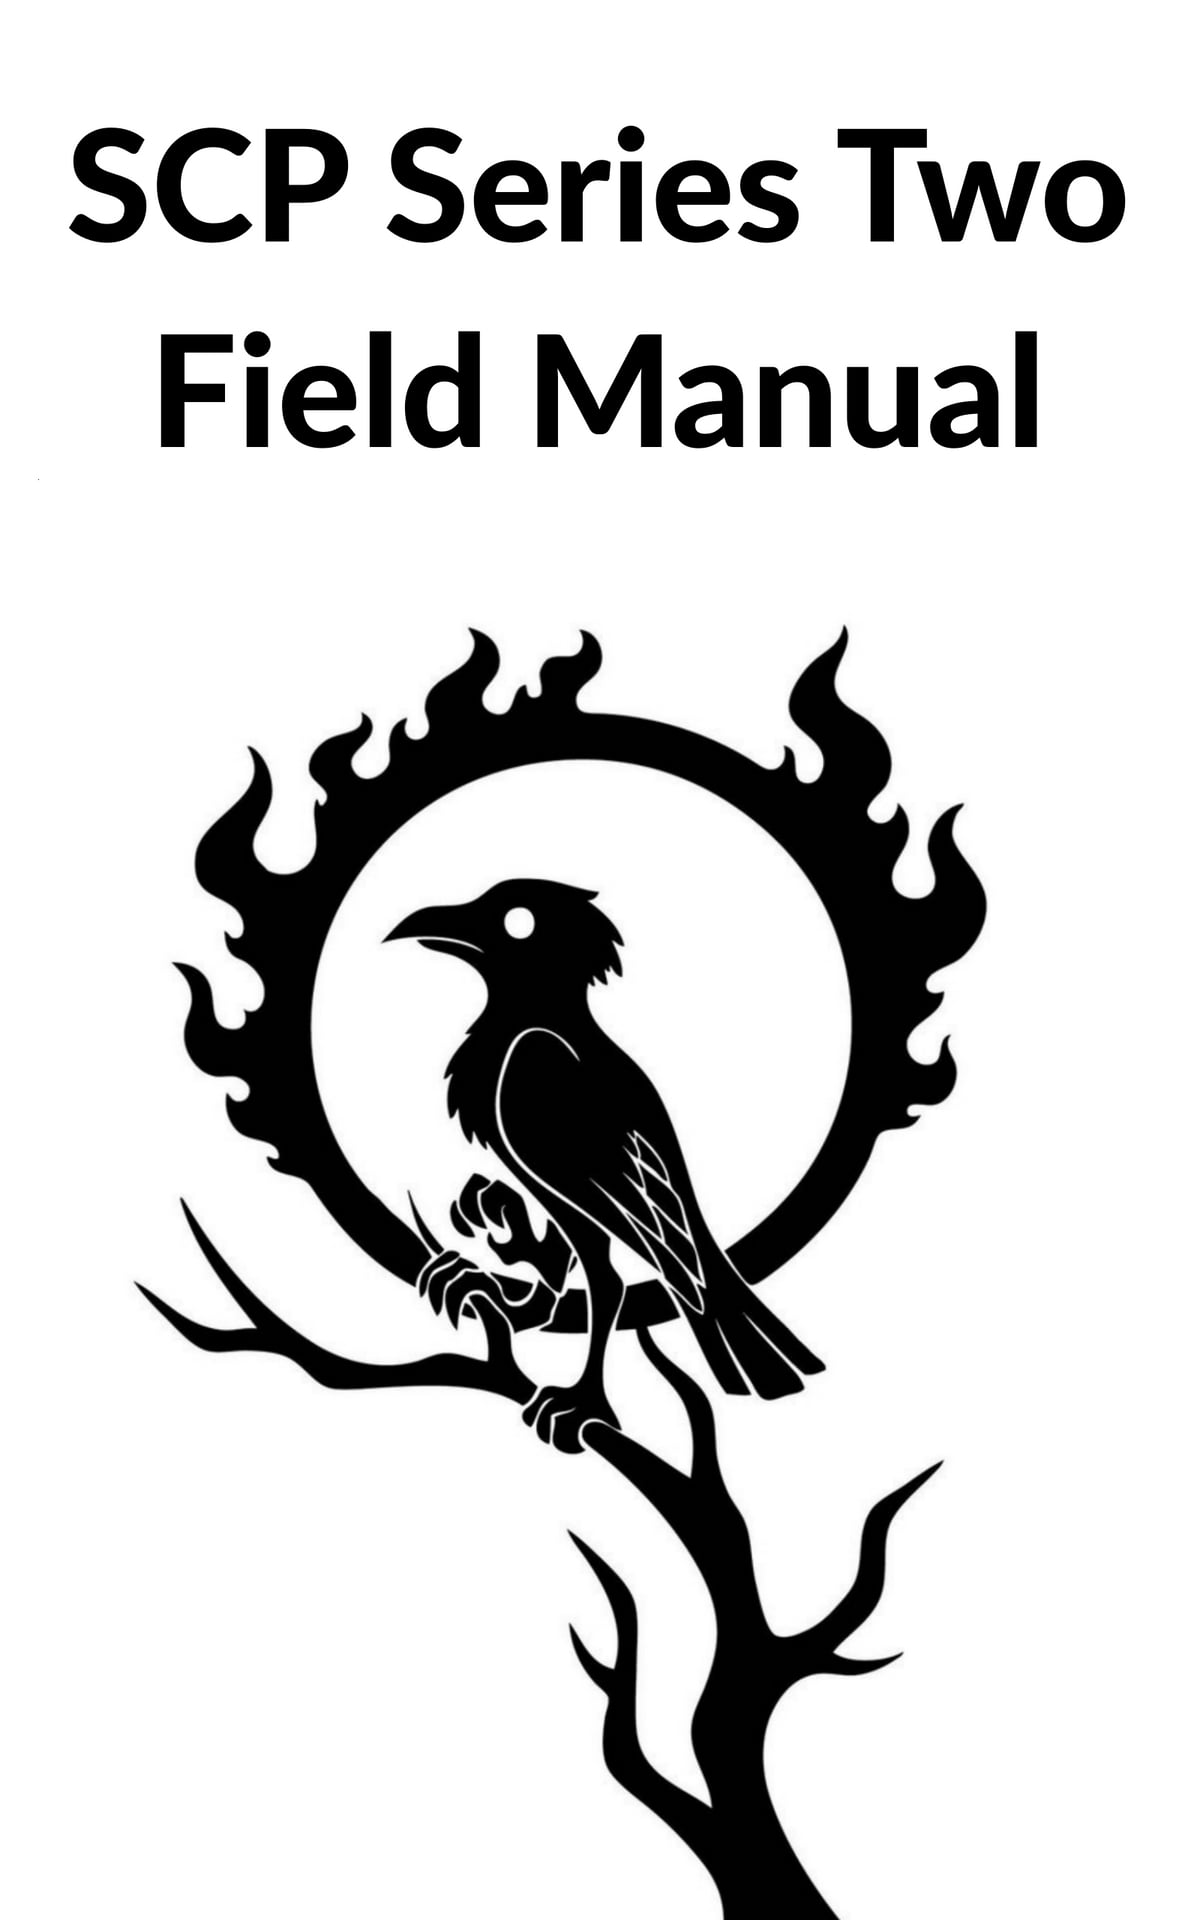 SCP Series Two Field Manual eBook by SCP Foundation